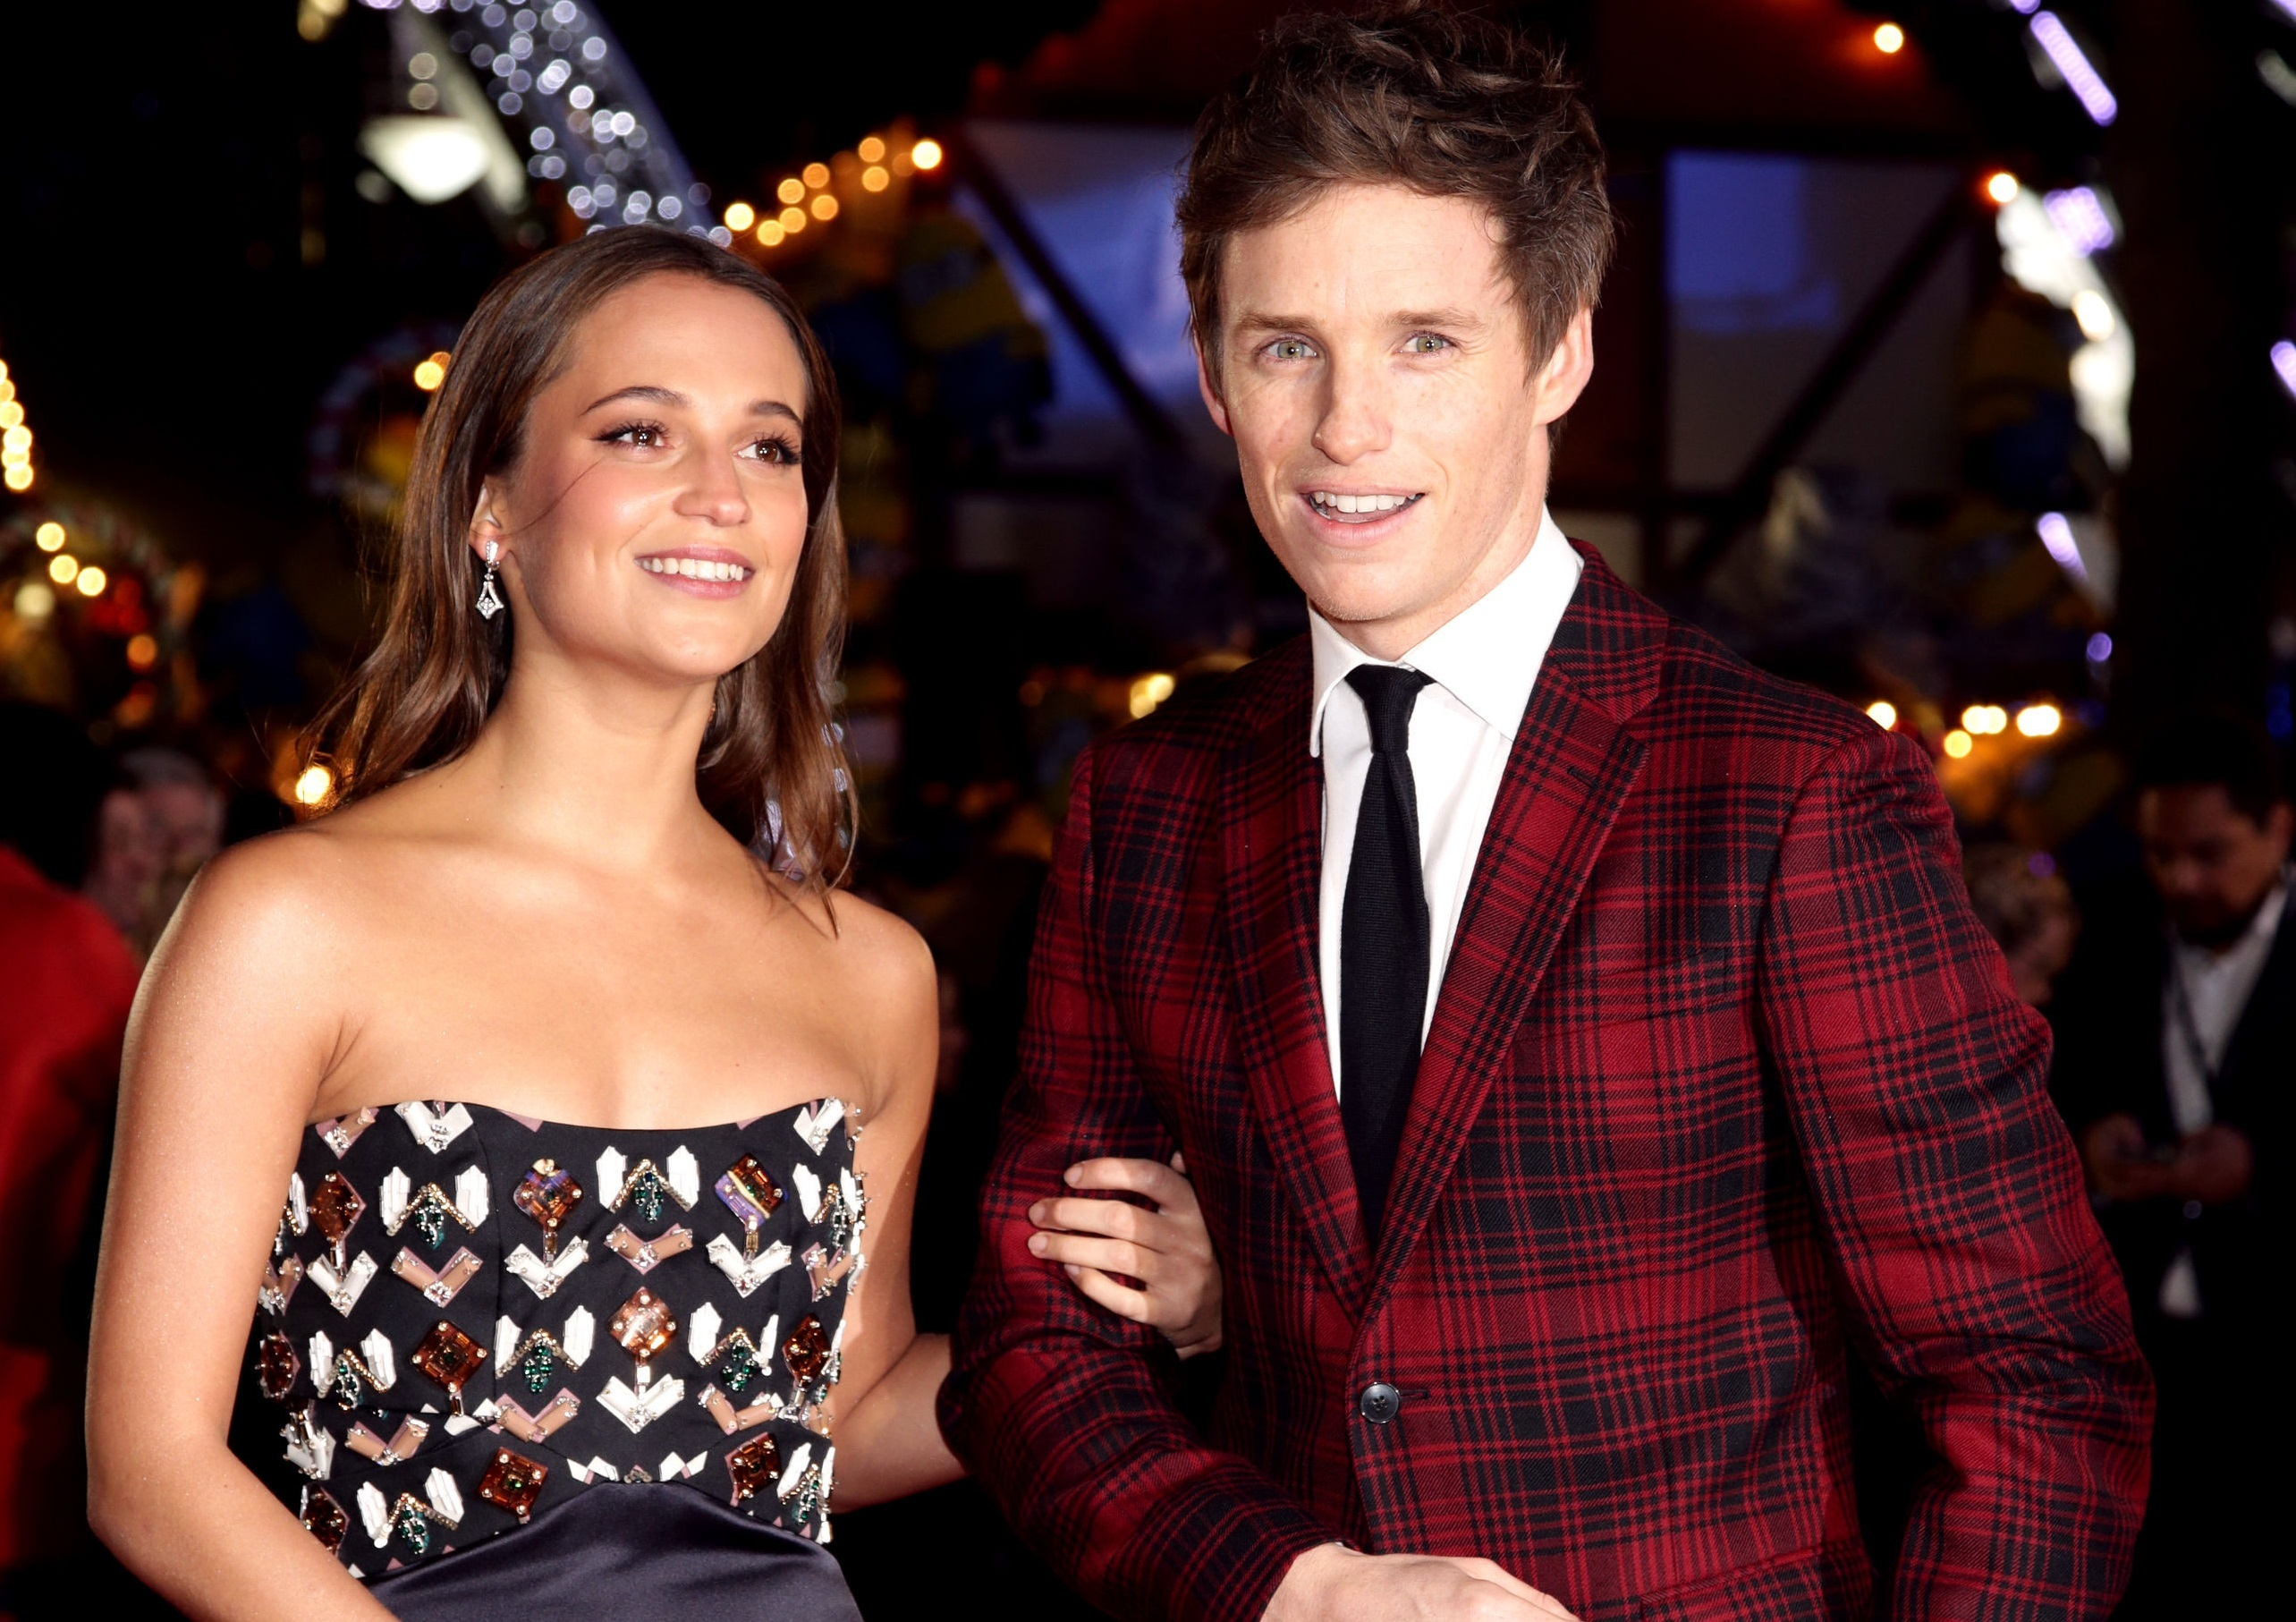 Alicia Vikander and Eddie Redmayne attending the premiere of the Danish Girl (Yui Mok/PA Wire)